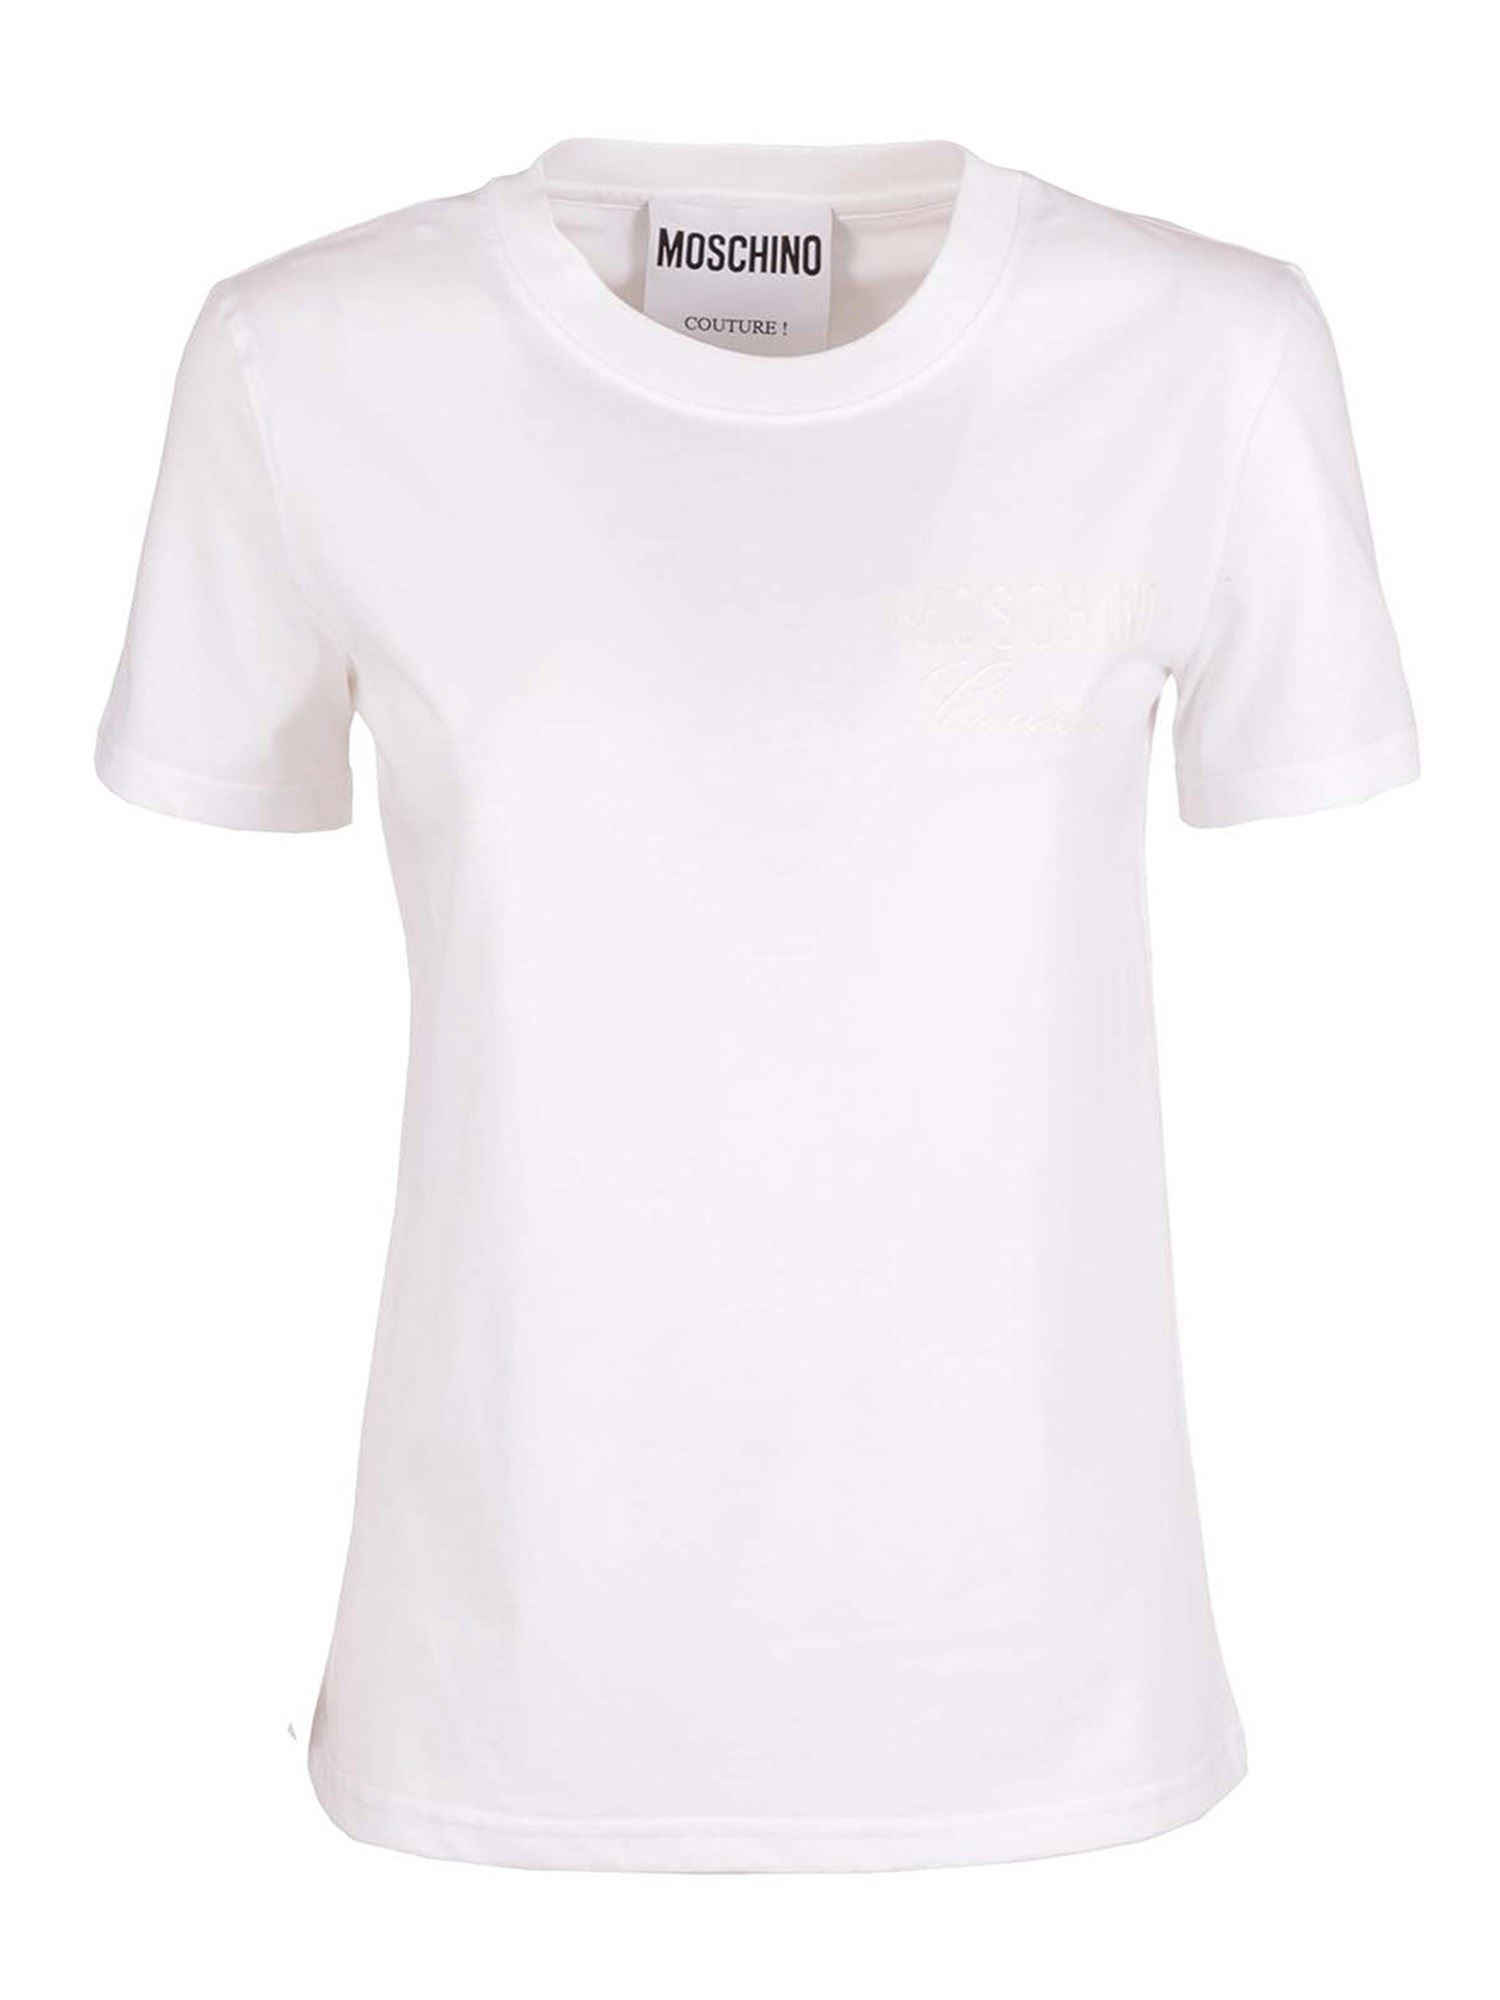 MOSCHINO BREAST LOGO T-SHIRT